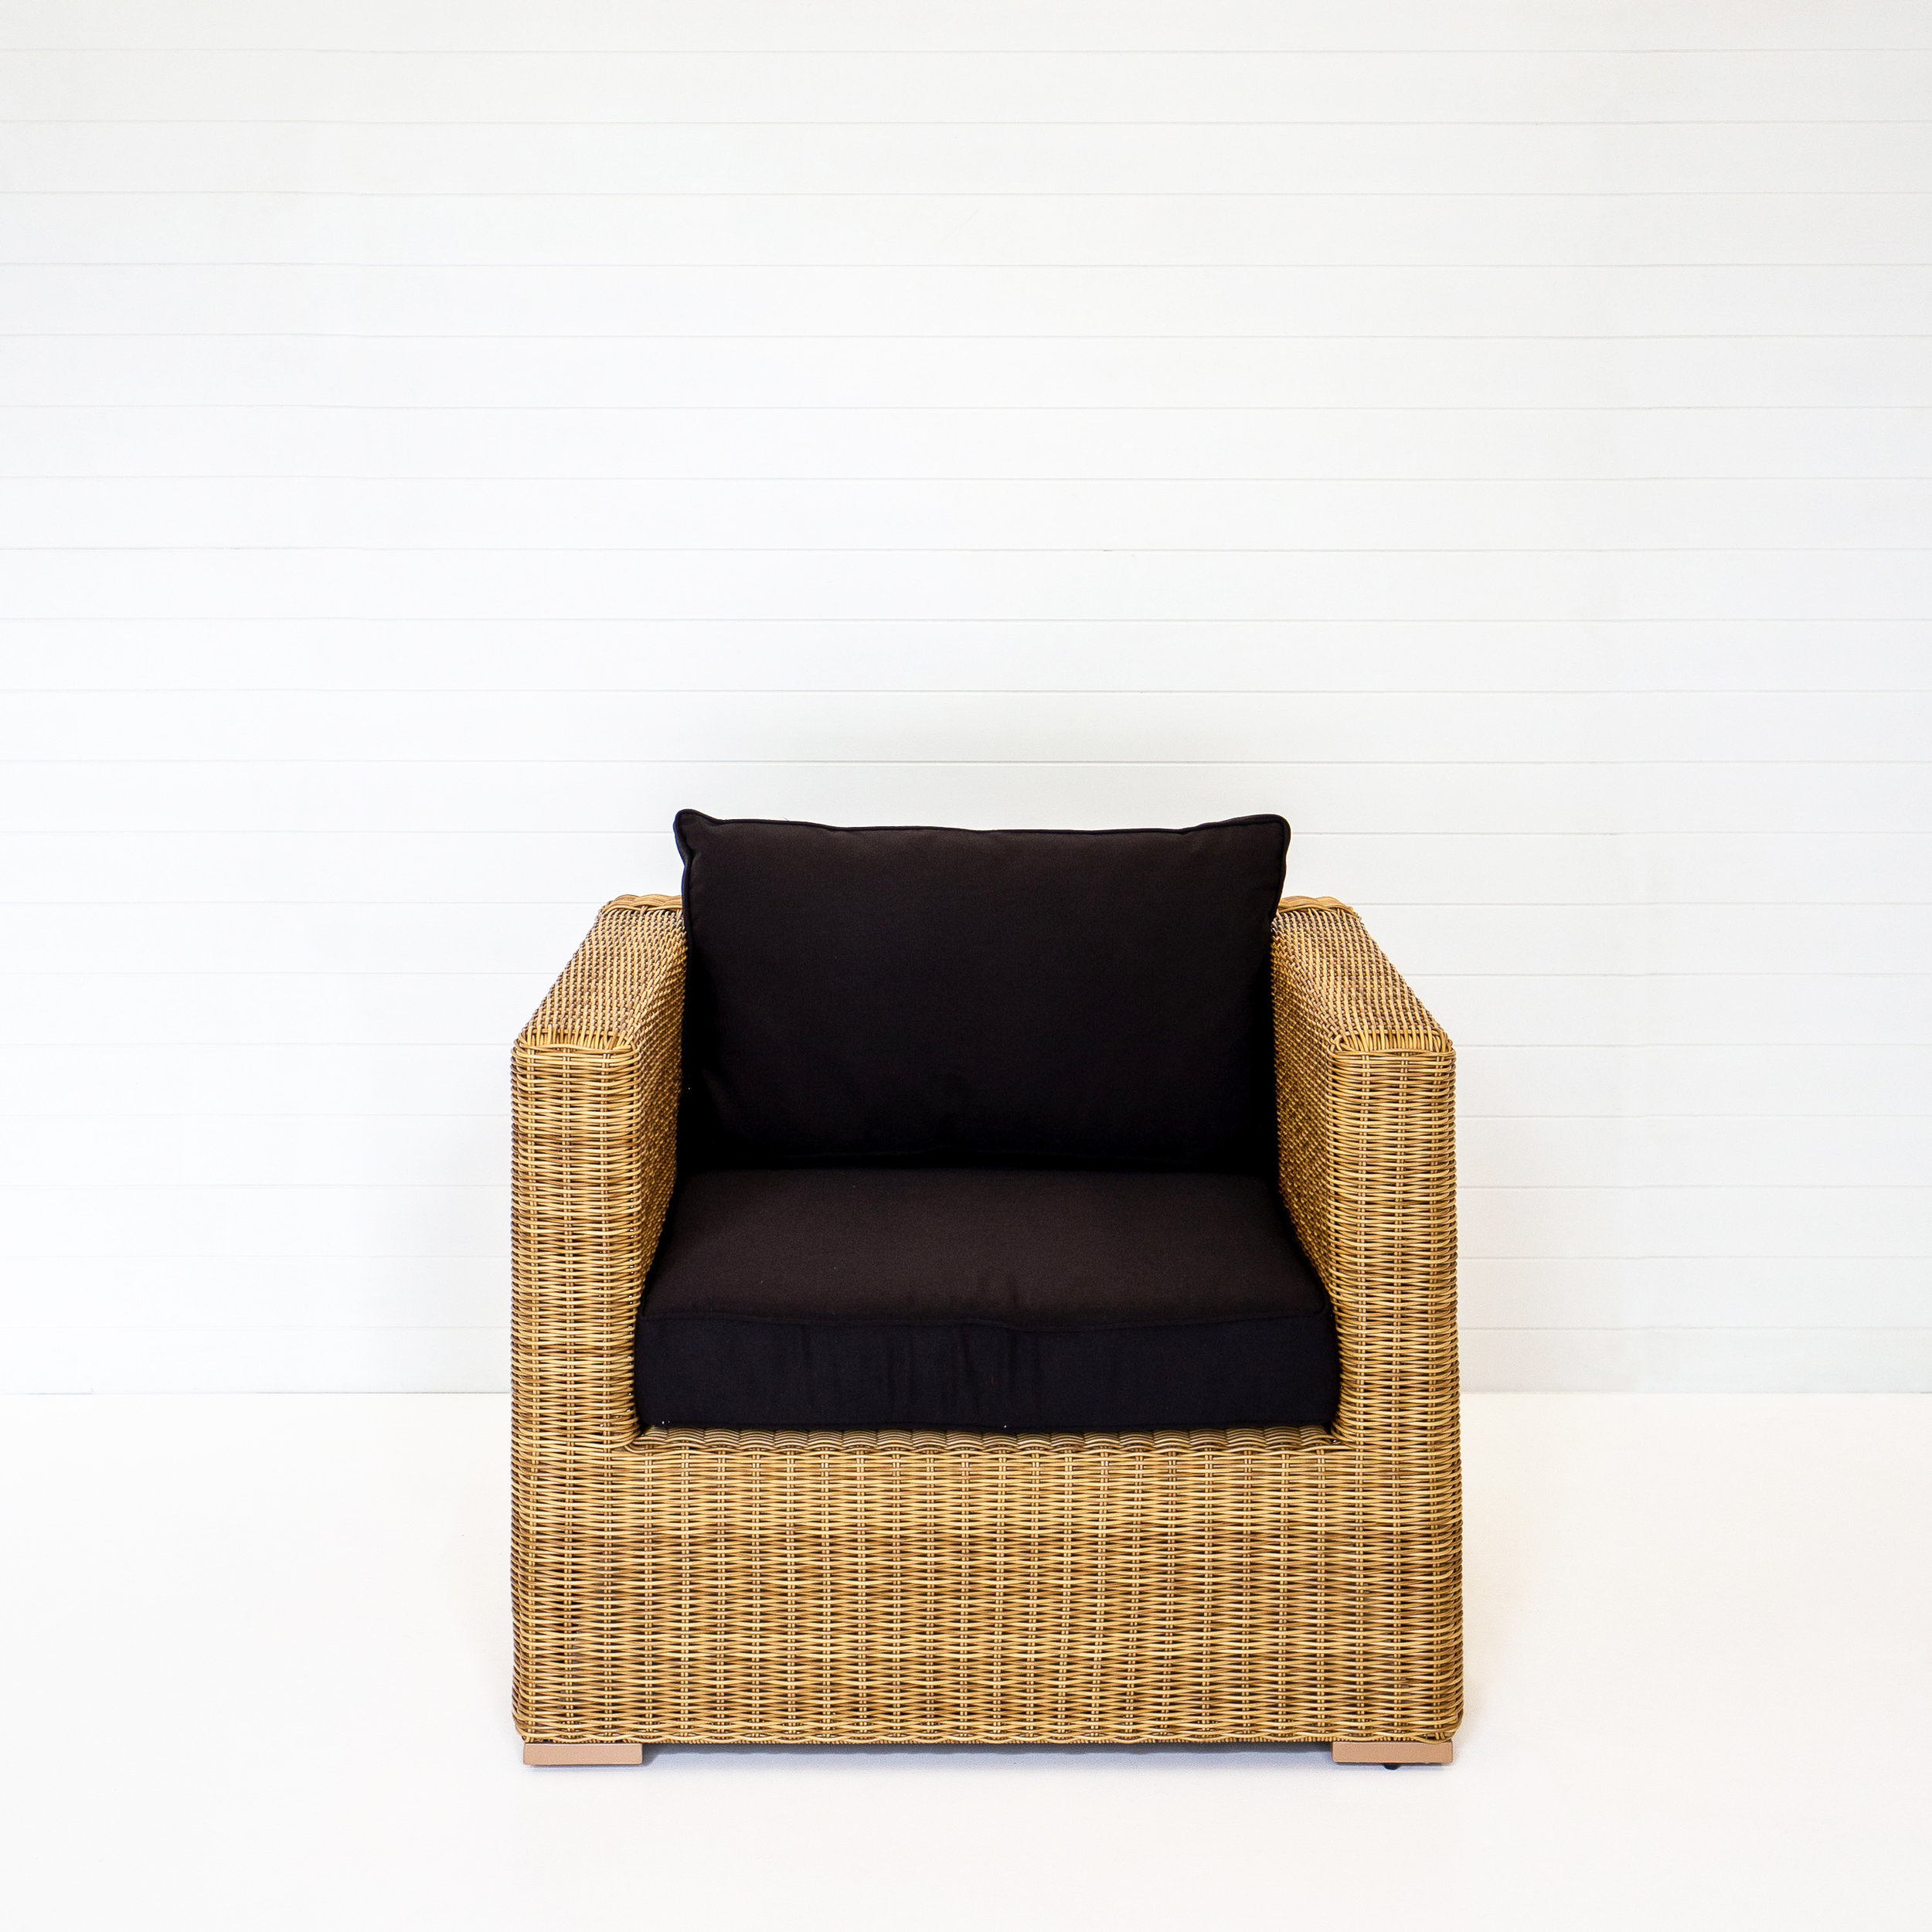 DUNE SINGLE SEAT ARMCHAIR WITH BLACK CUSHIONS